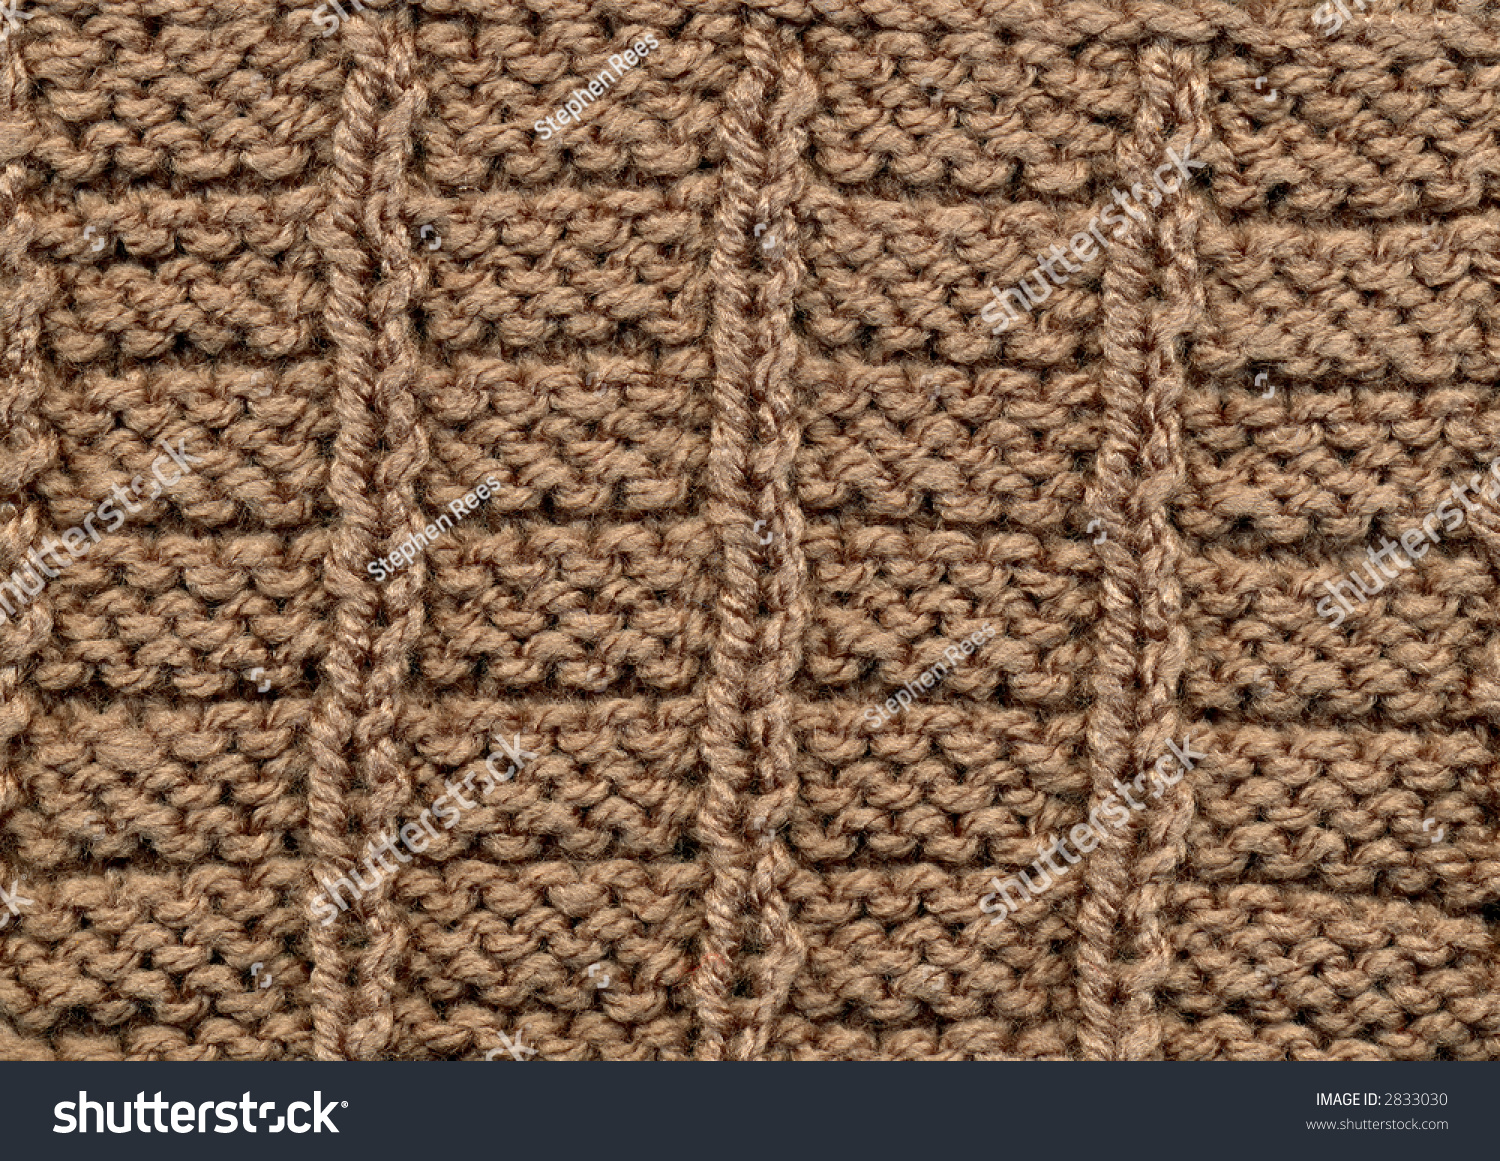 Knitting Background Texture : Wool knitting texture background horizontal vertical stock